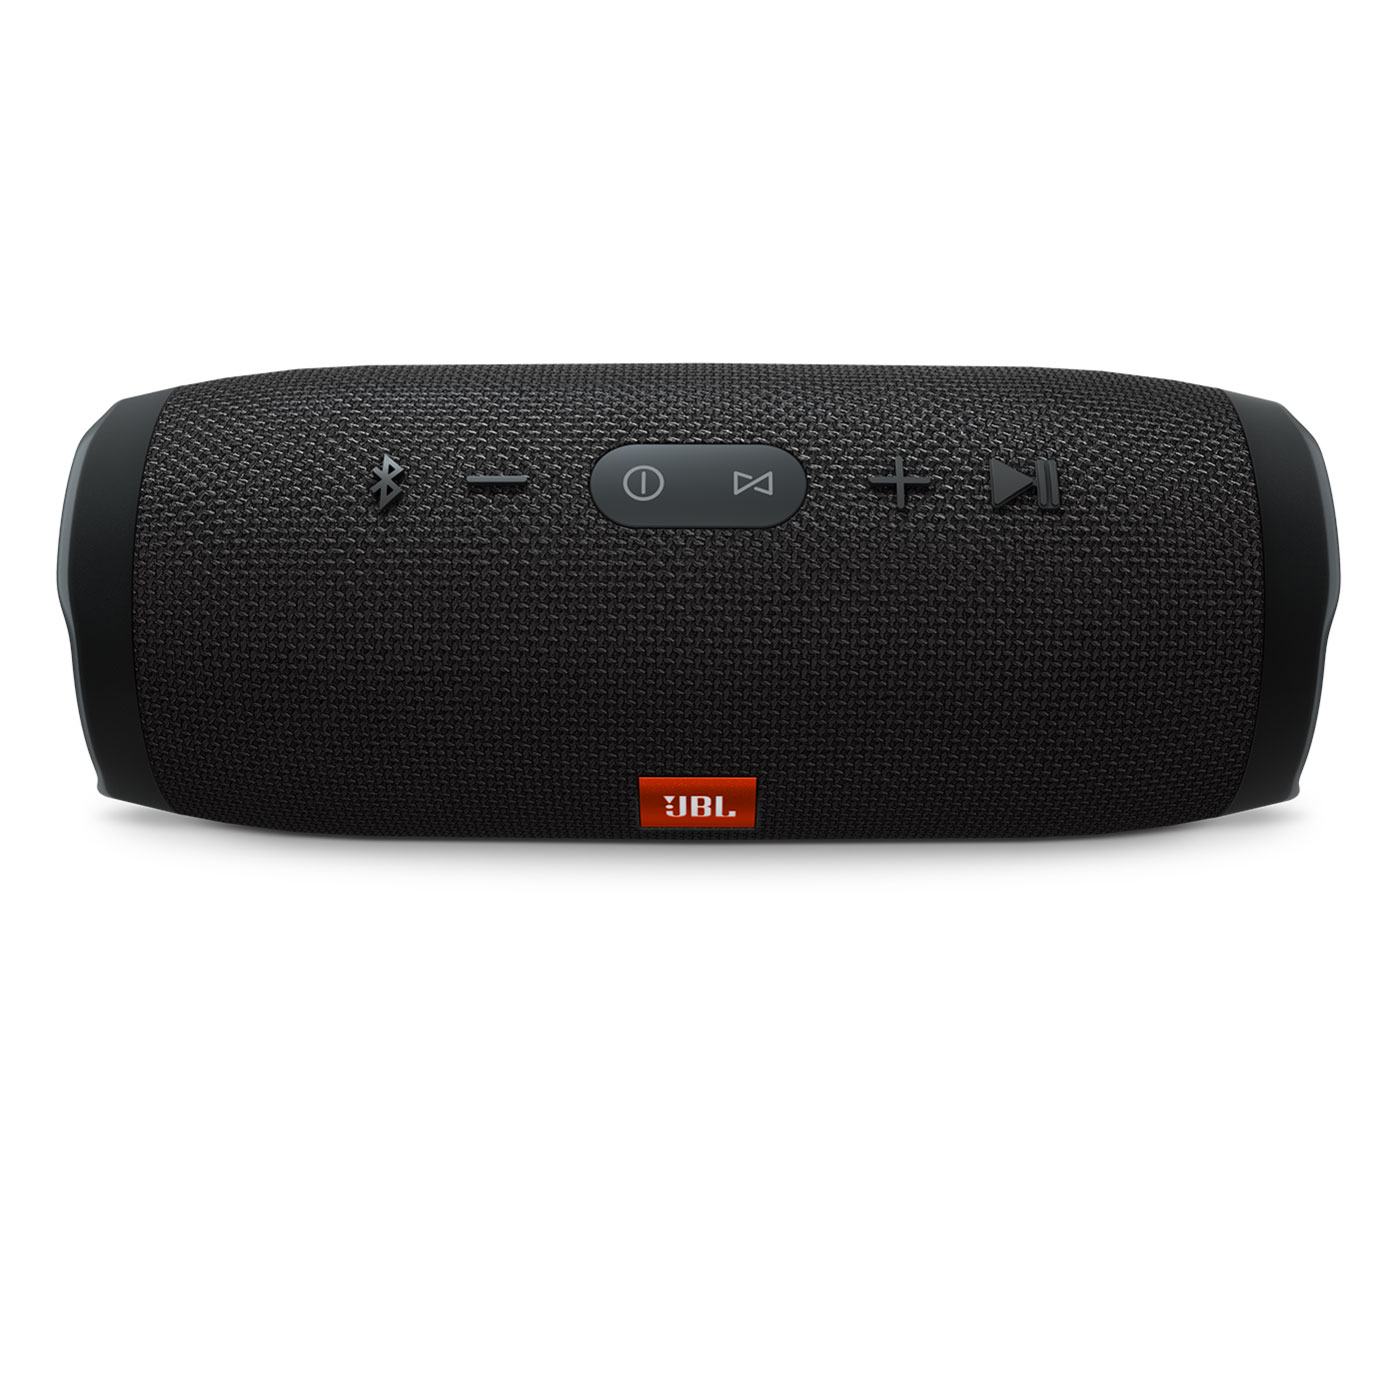 Jbl Bluetooth Speakers : jbl charge 3 waterproof portable bluetooth speaker ebay ~ Hamham.info Haus und Dekorationen